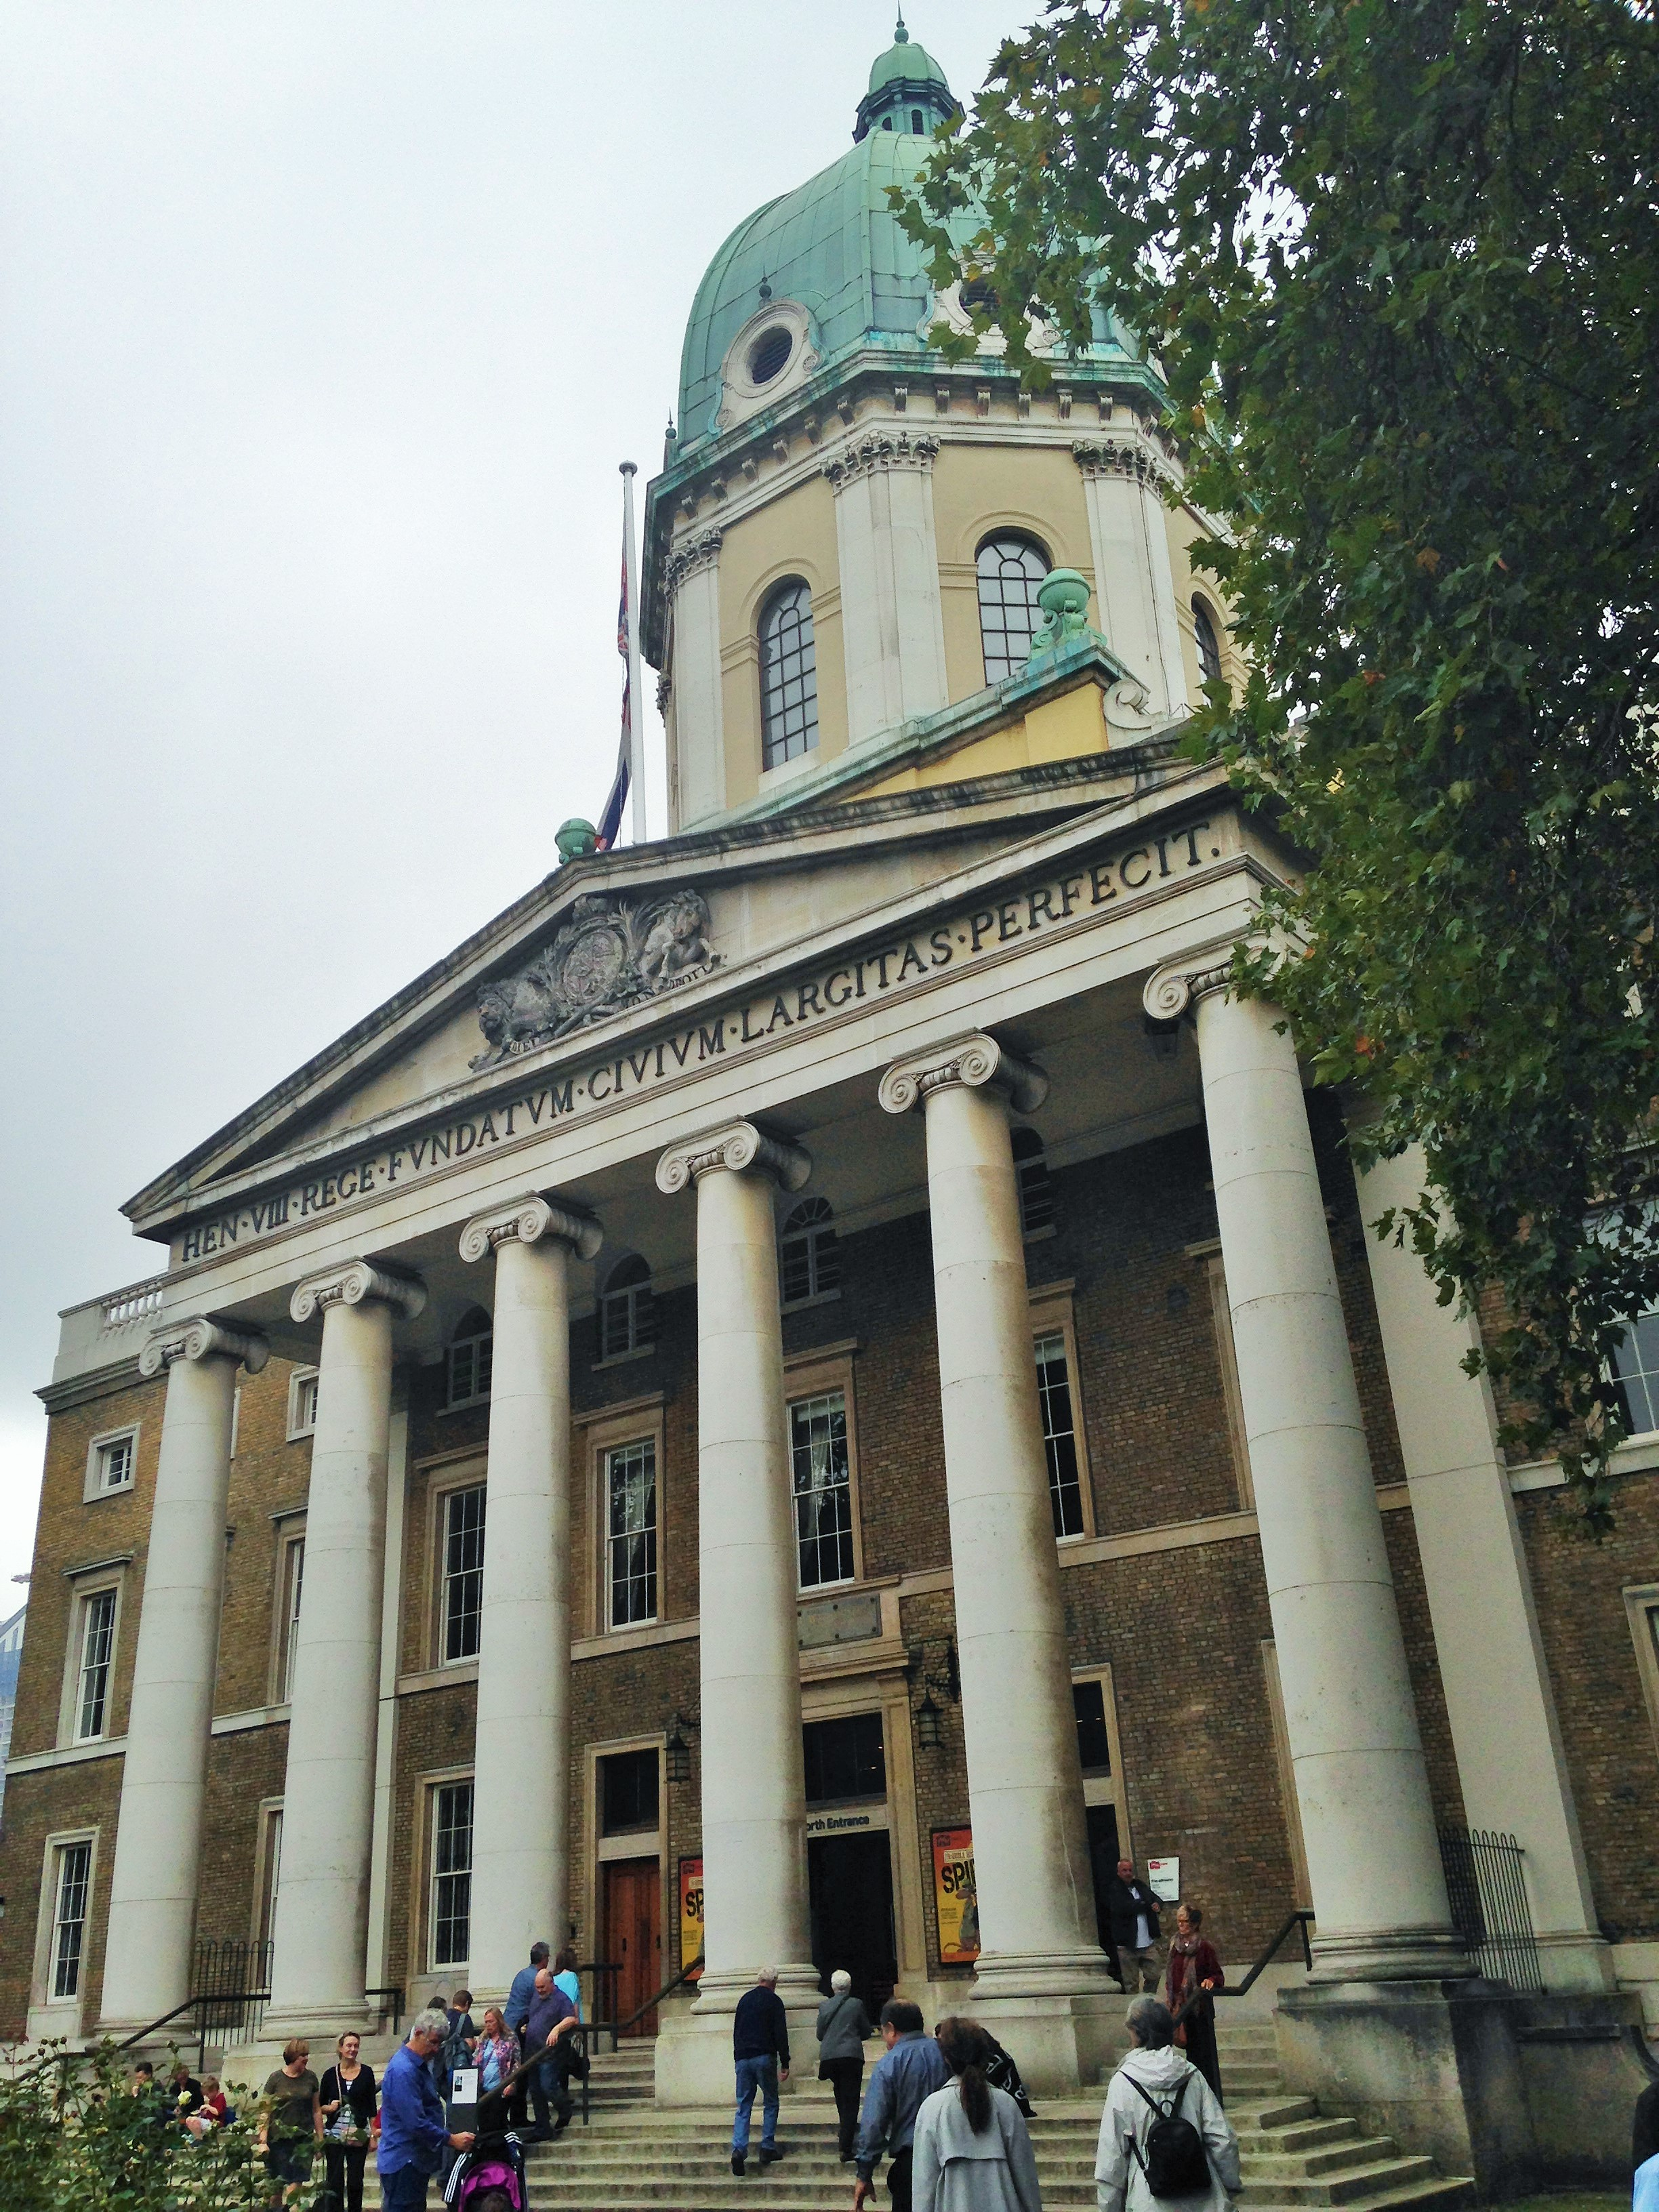 The Imperial War Museum entrance - kenningtonrunoff.com